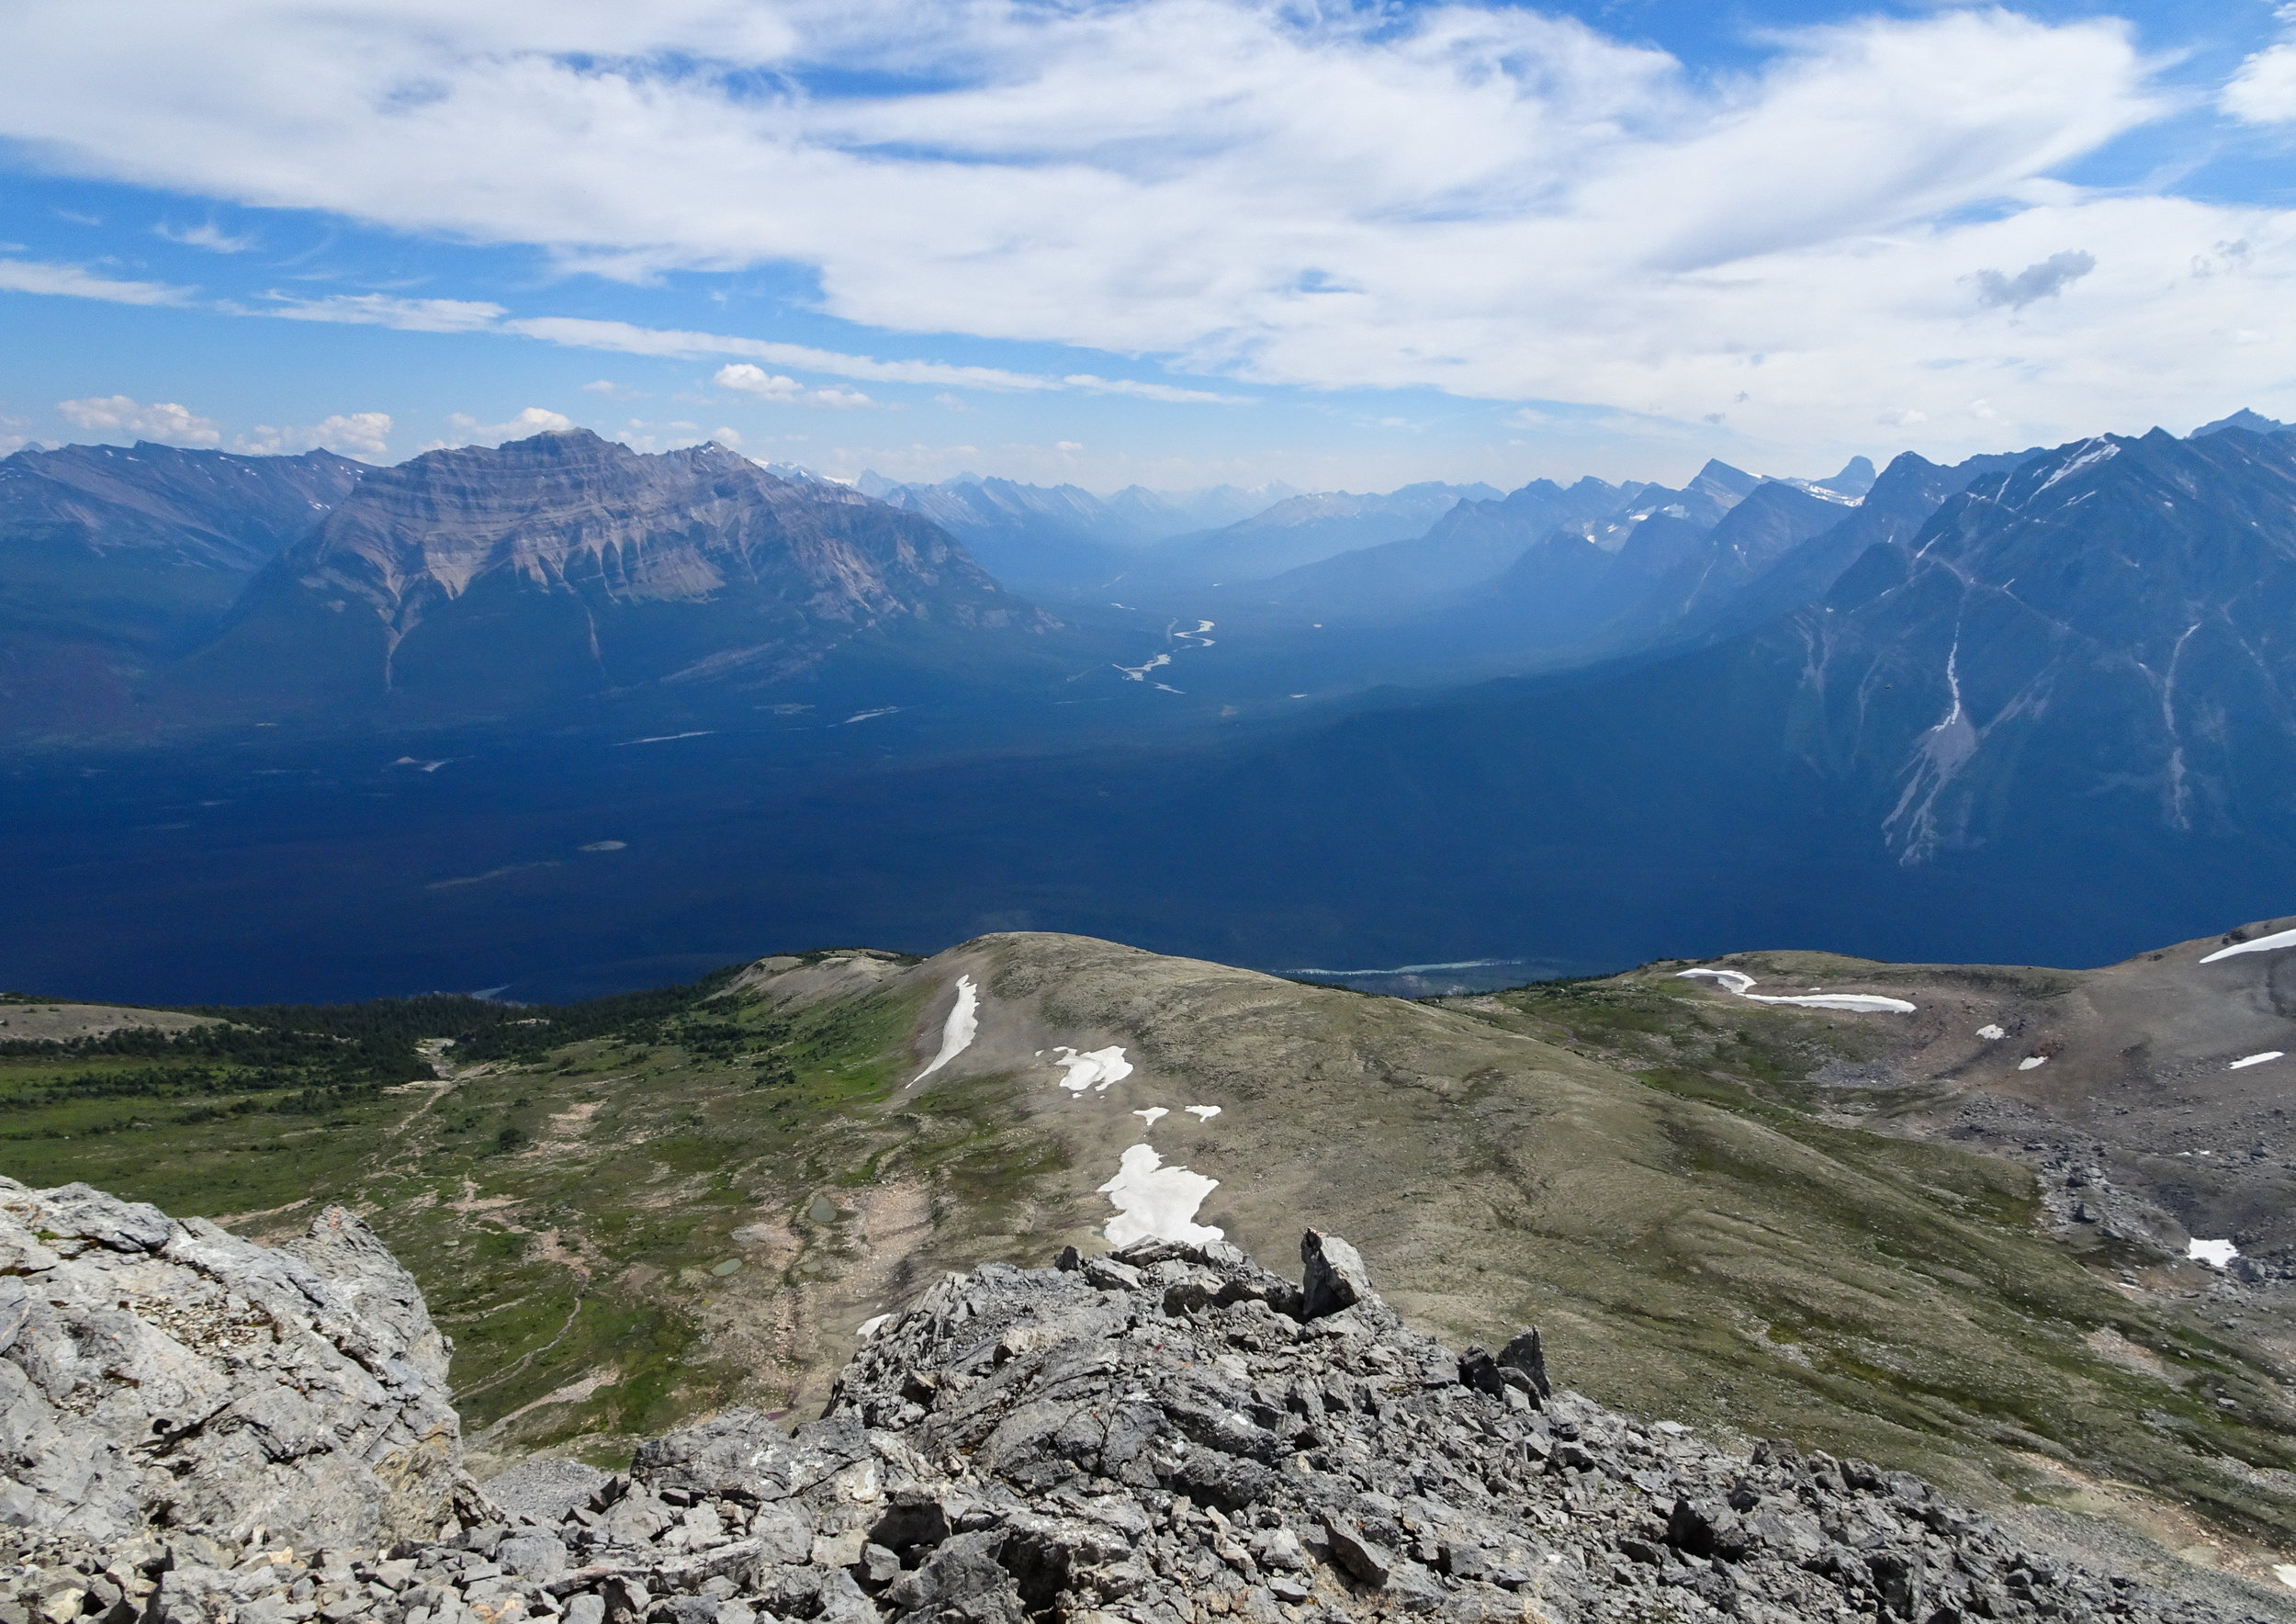 Summit of Edith Cavell Trail